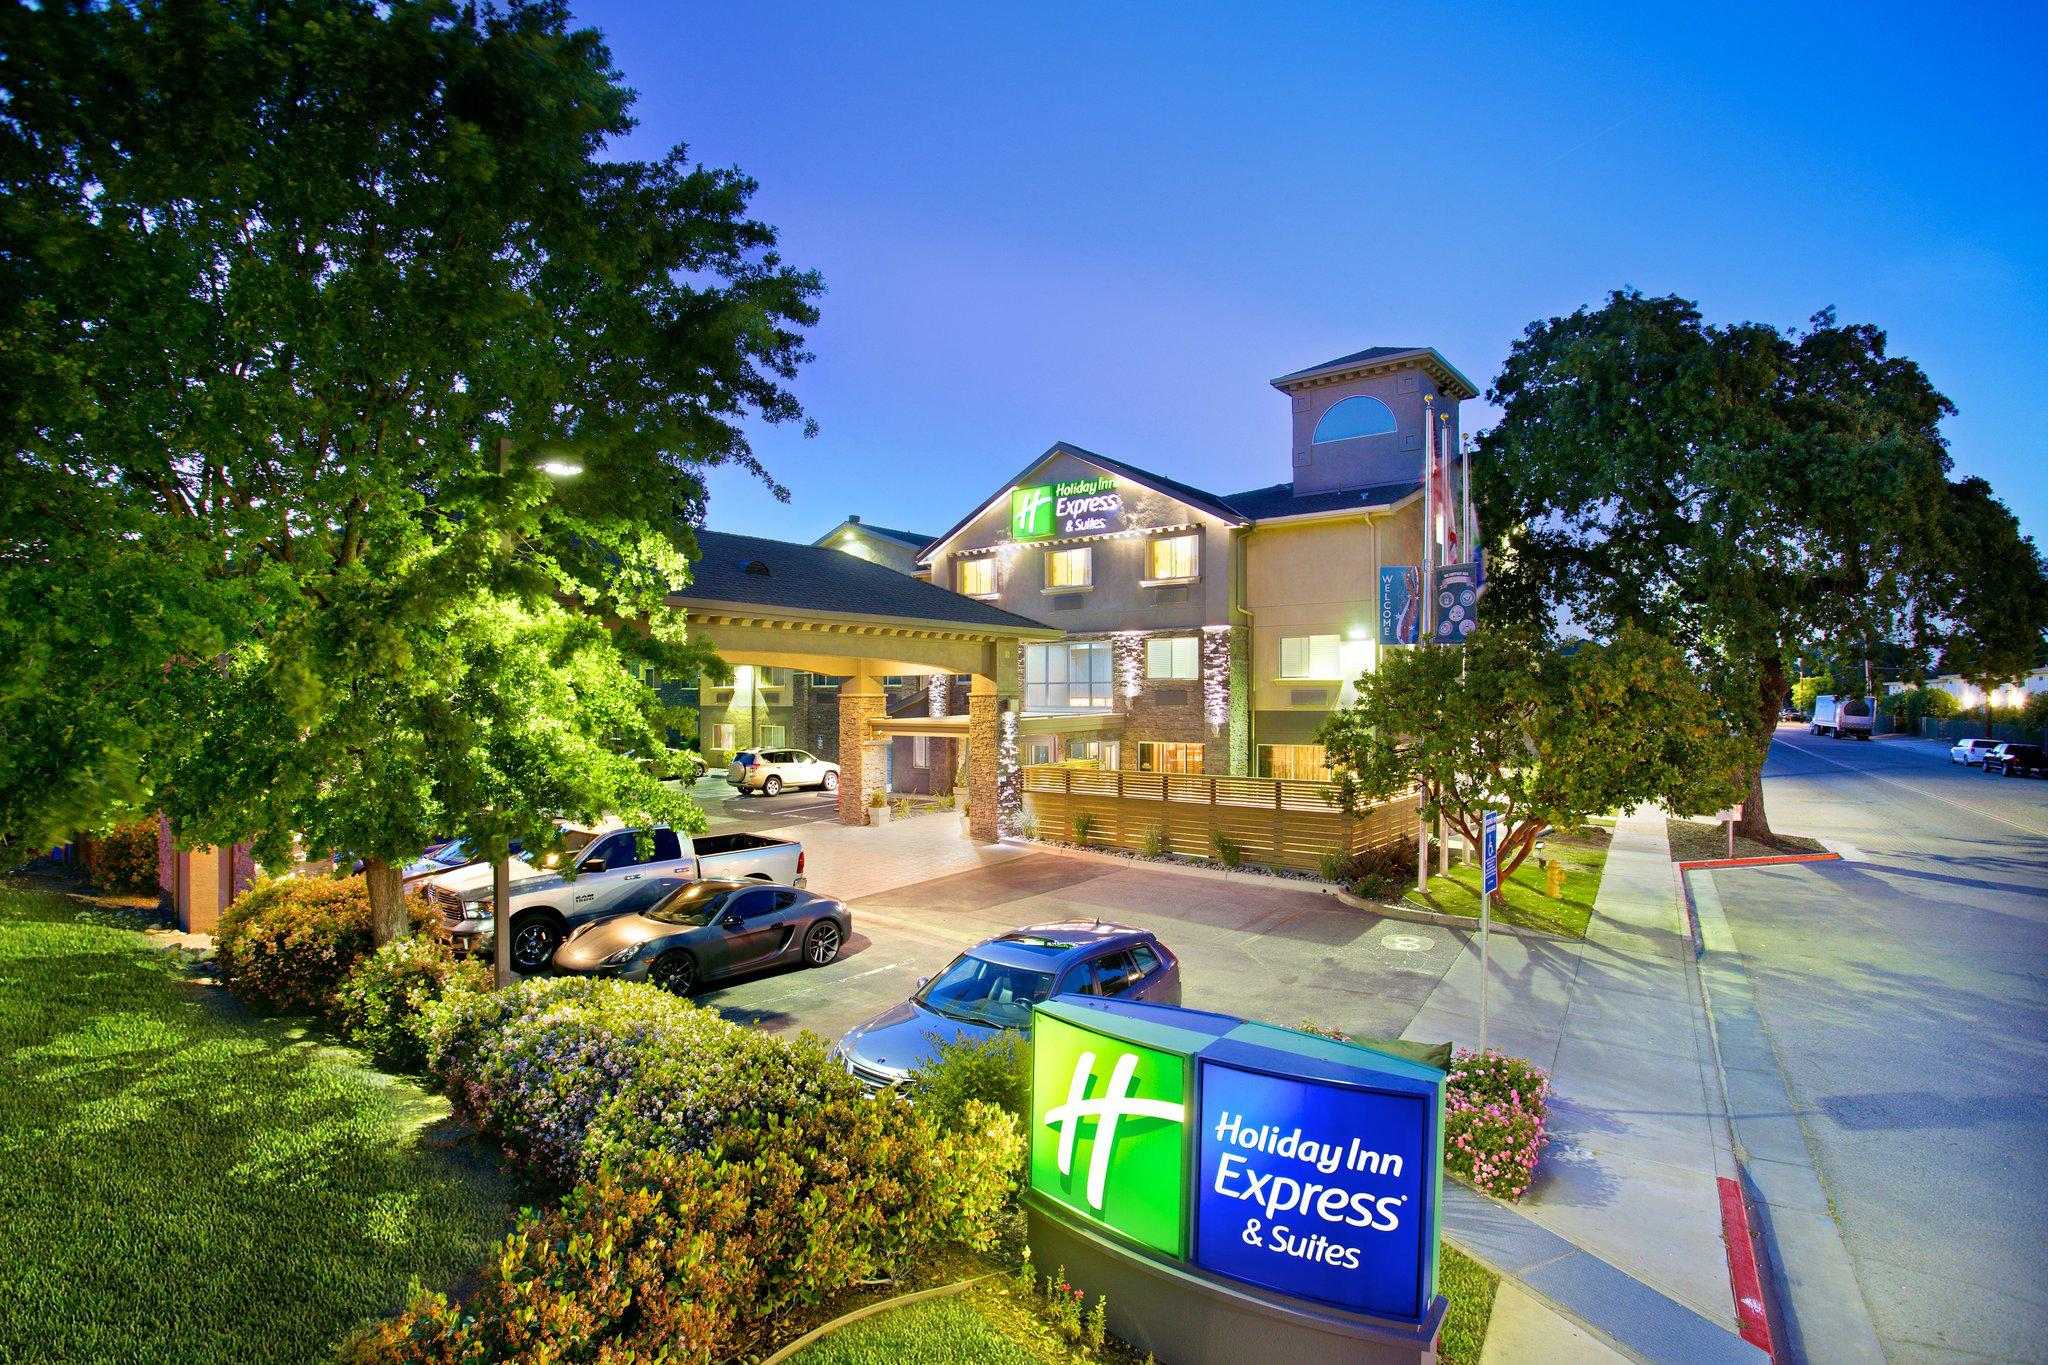 Holiday Inn Express & Suites Paso Robles, an IHG Hotel